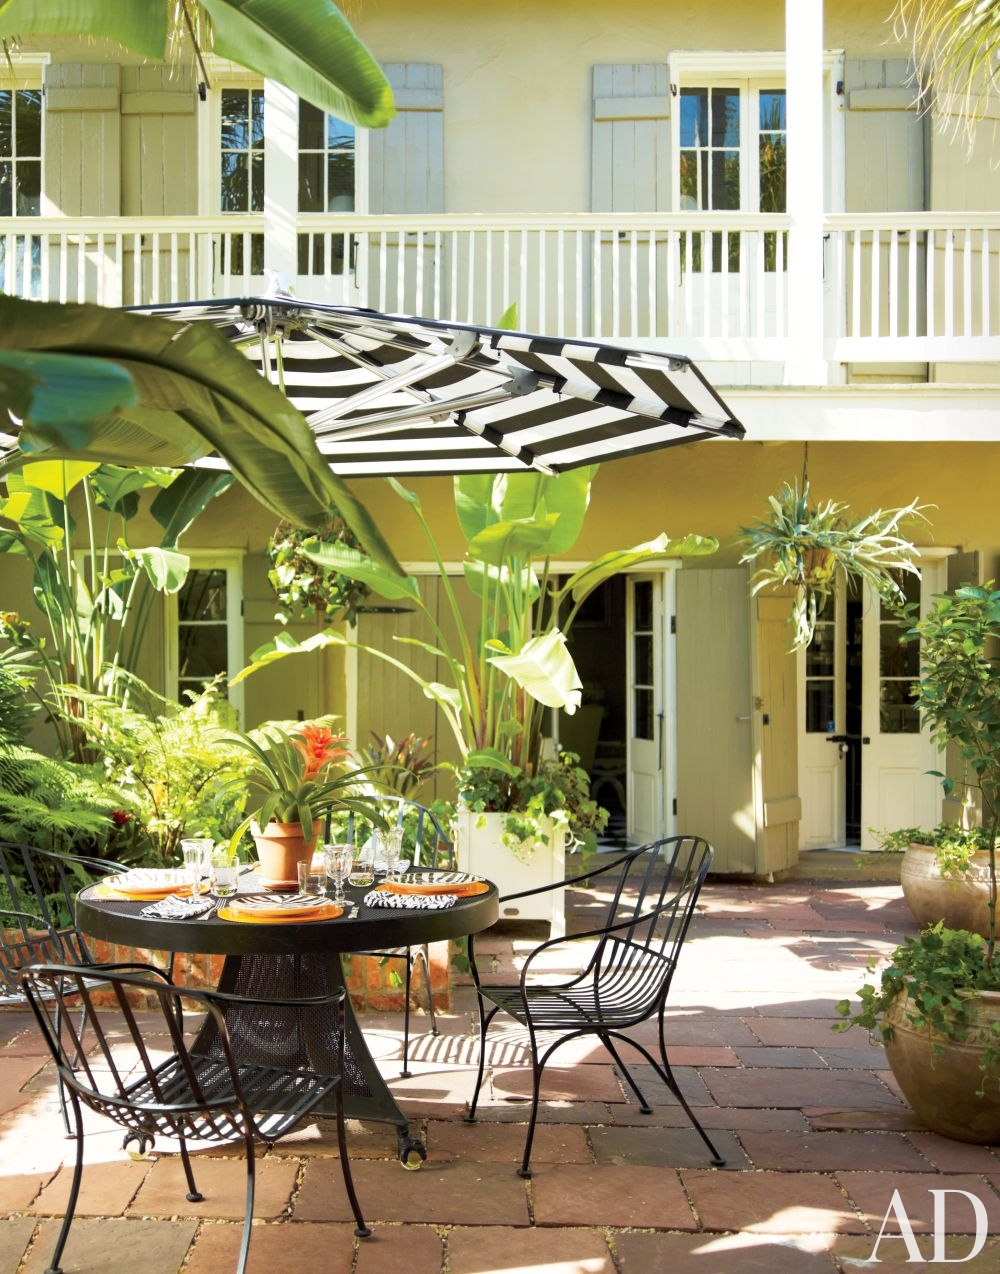 outdoor space striped umbrella garden furniture better decorating bible blog california banana tree palms potted plants